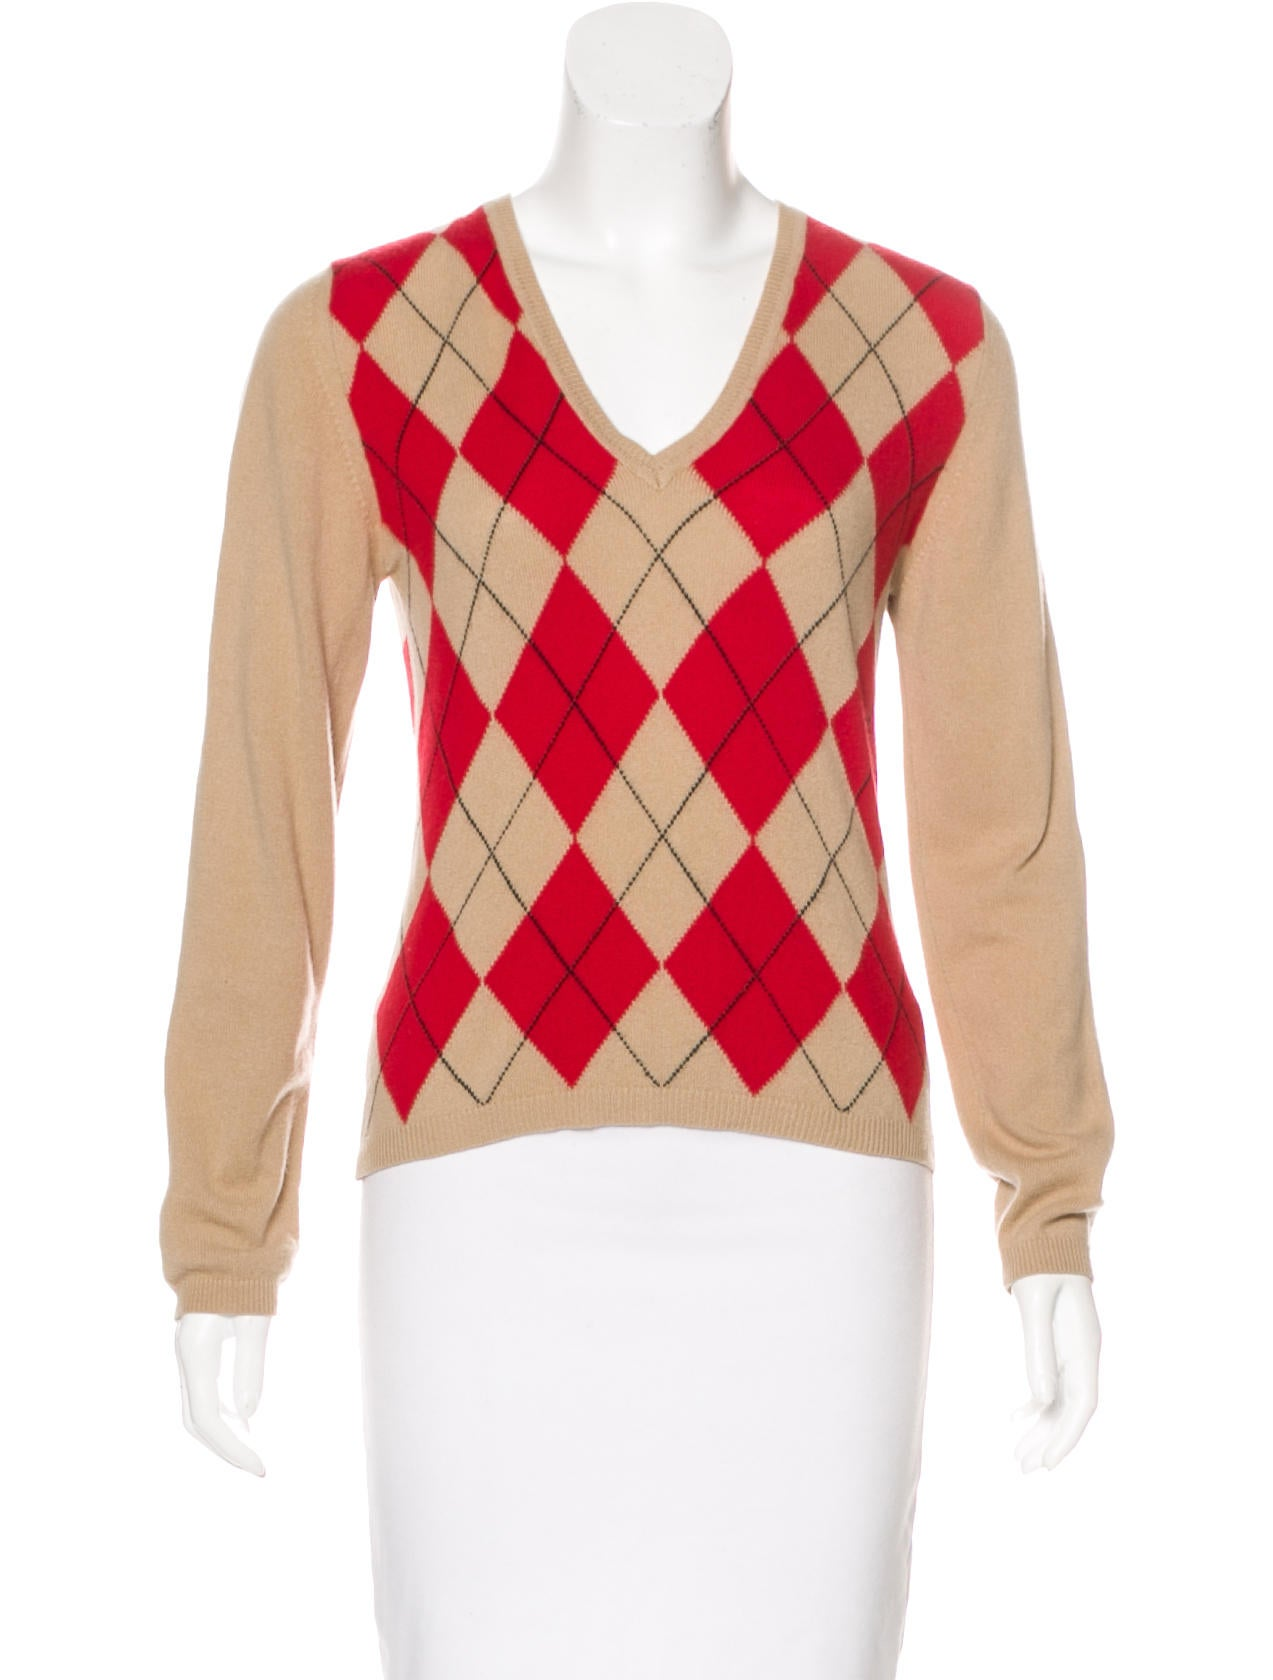 Burberry London Cashmere Argyle Sweater - Clothing - WBURL27104 ...